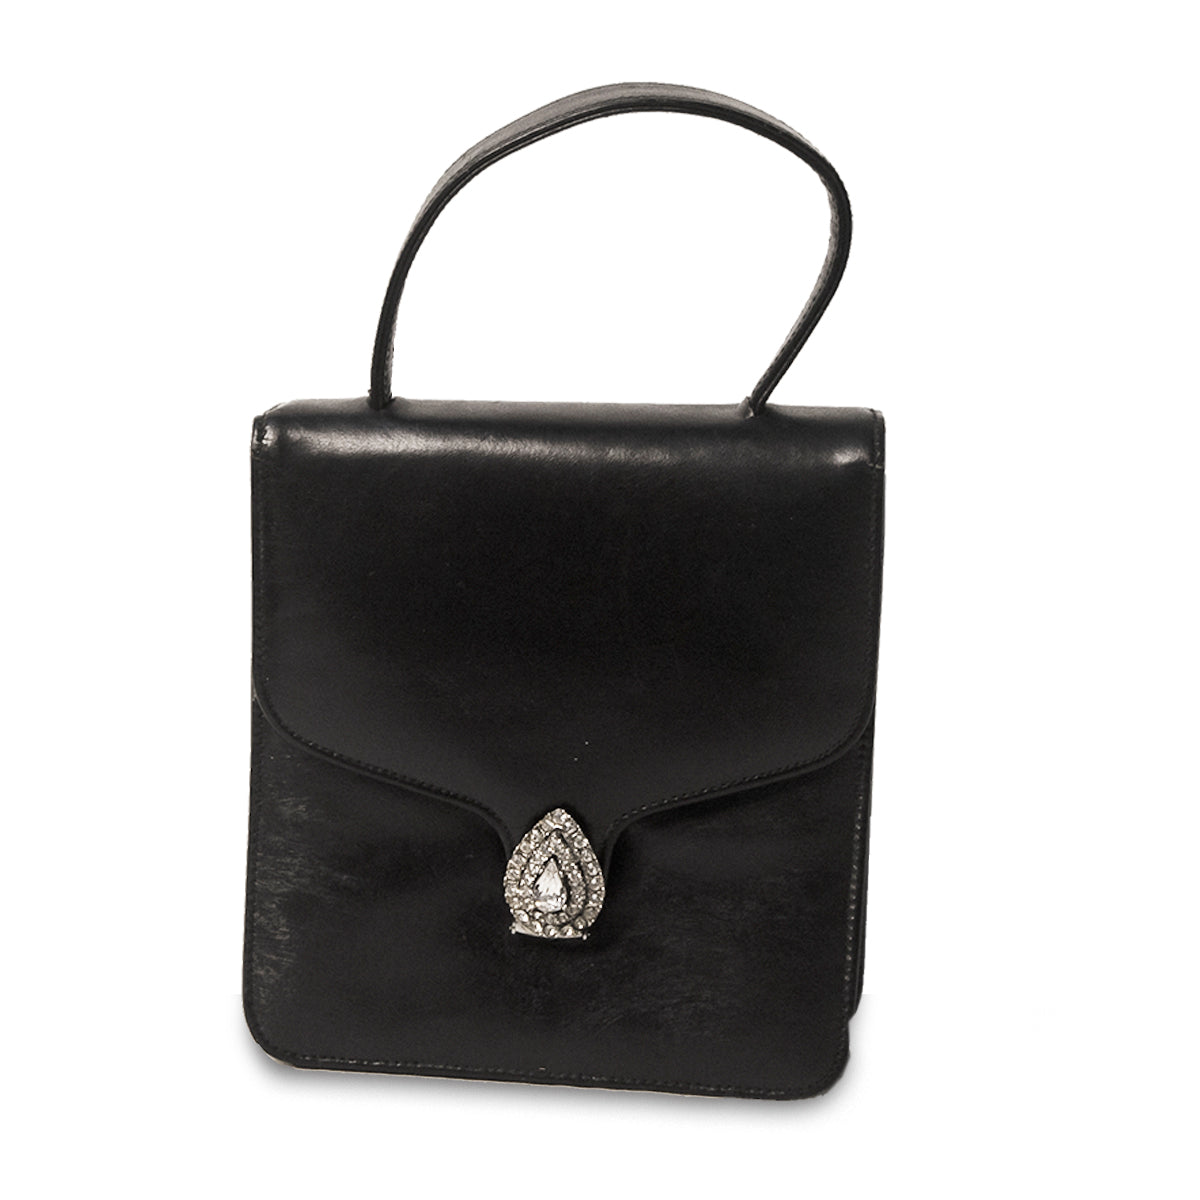 1950s Black Cocktail Bag, Rhinestone Closure